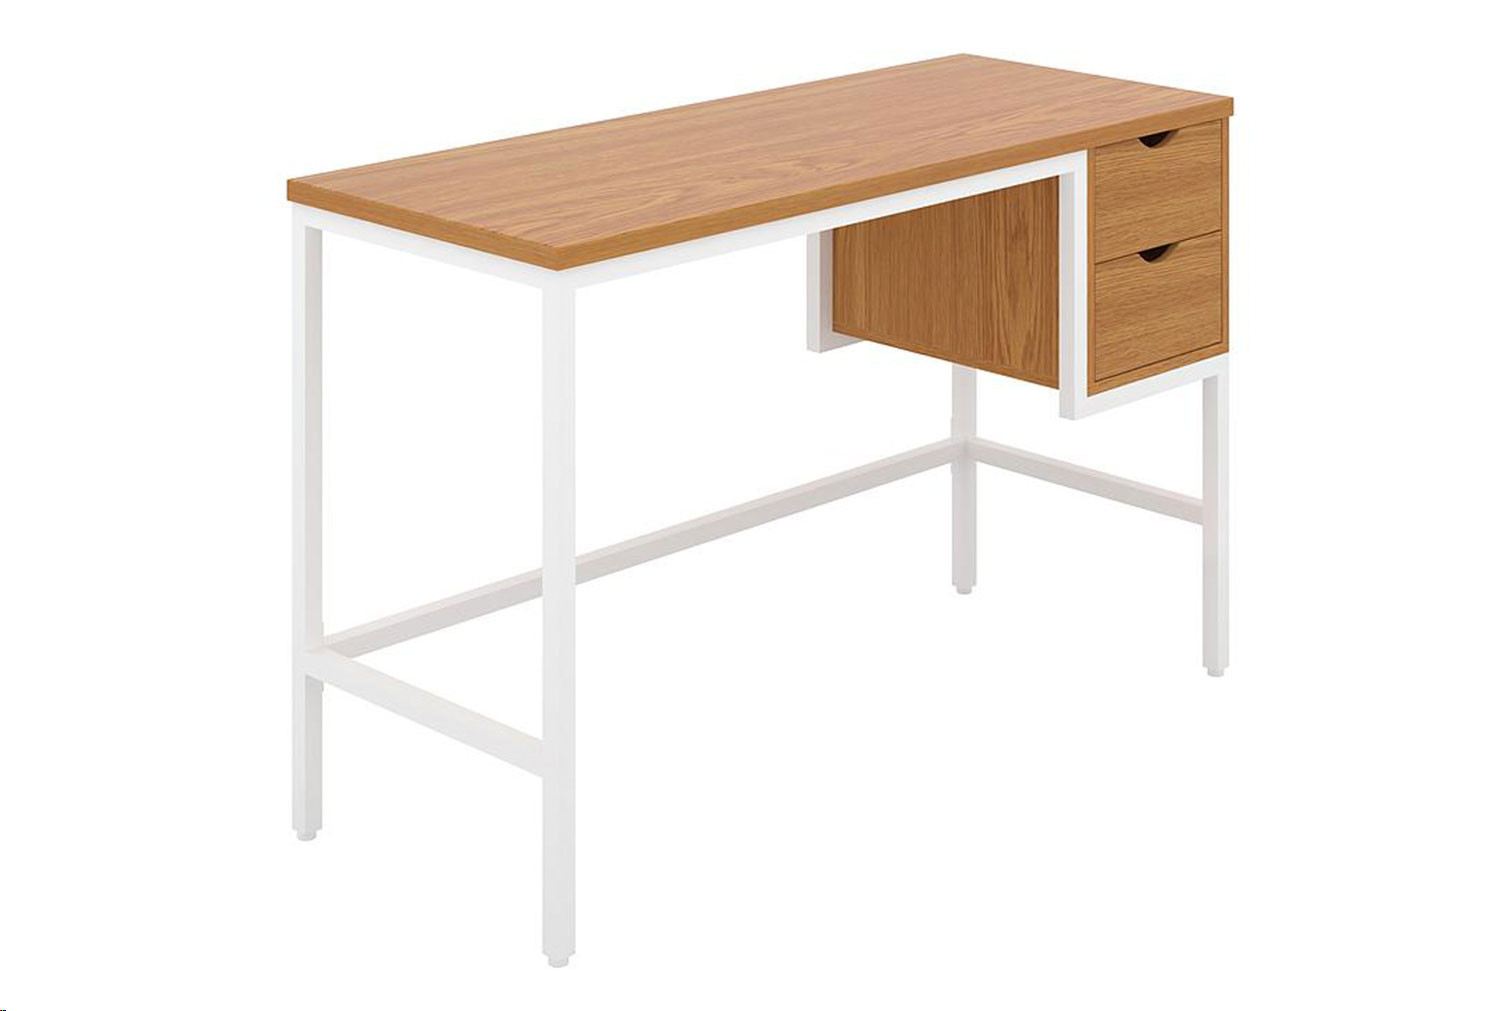 Shen Home Office Desk With 2 Drawers (White Frame)